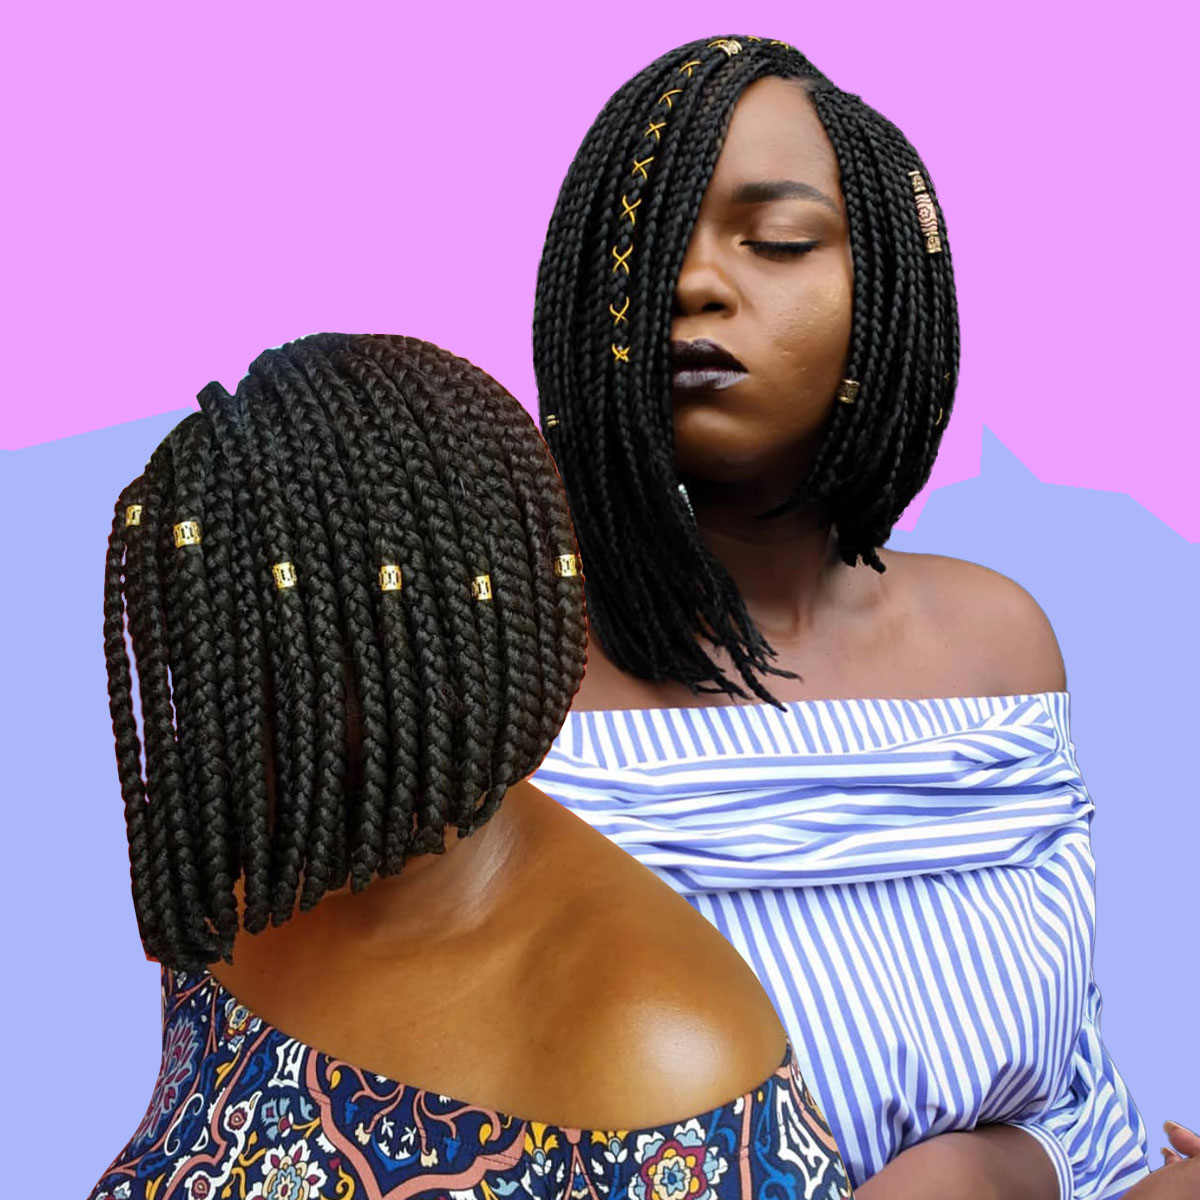 17 Beautiful Braided Bobs From Instagram You Need To Give A Try Within Widely Used Short And Chic Bob Braid Hairstyles (Gallery 14 of 20)